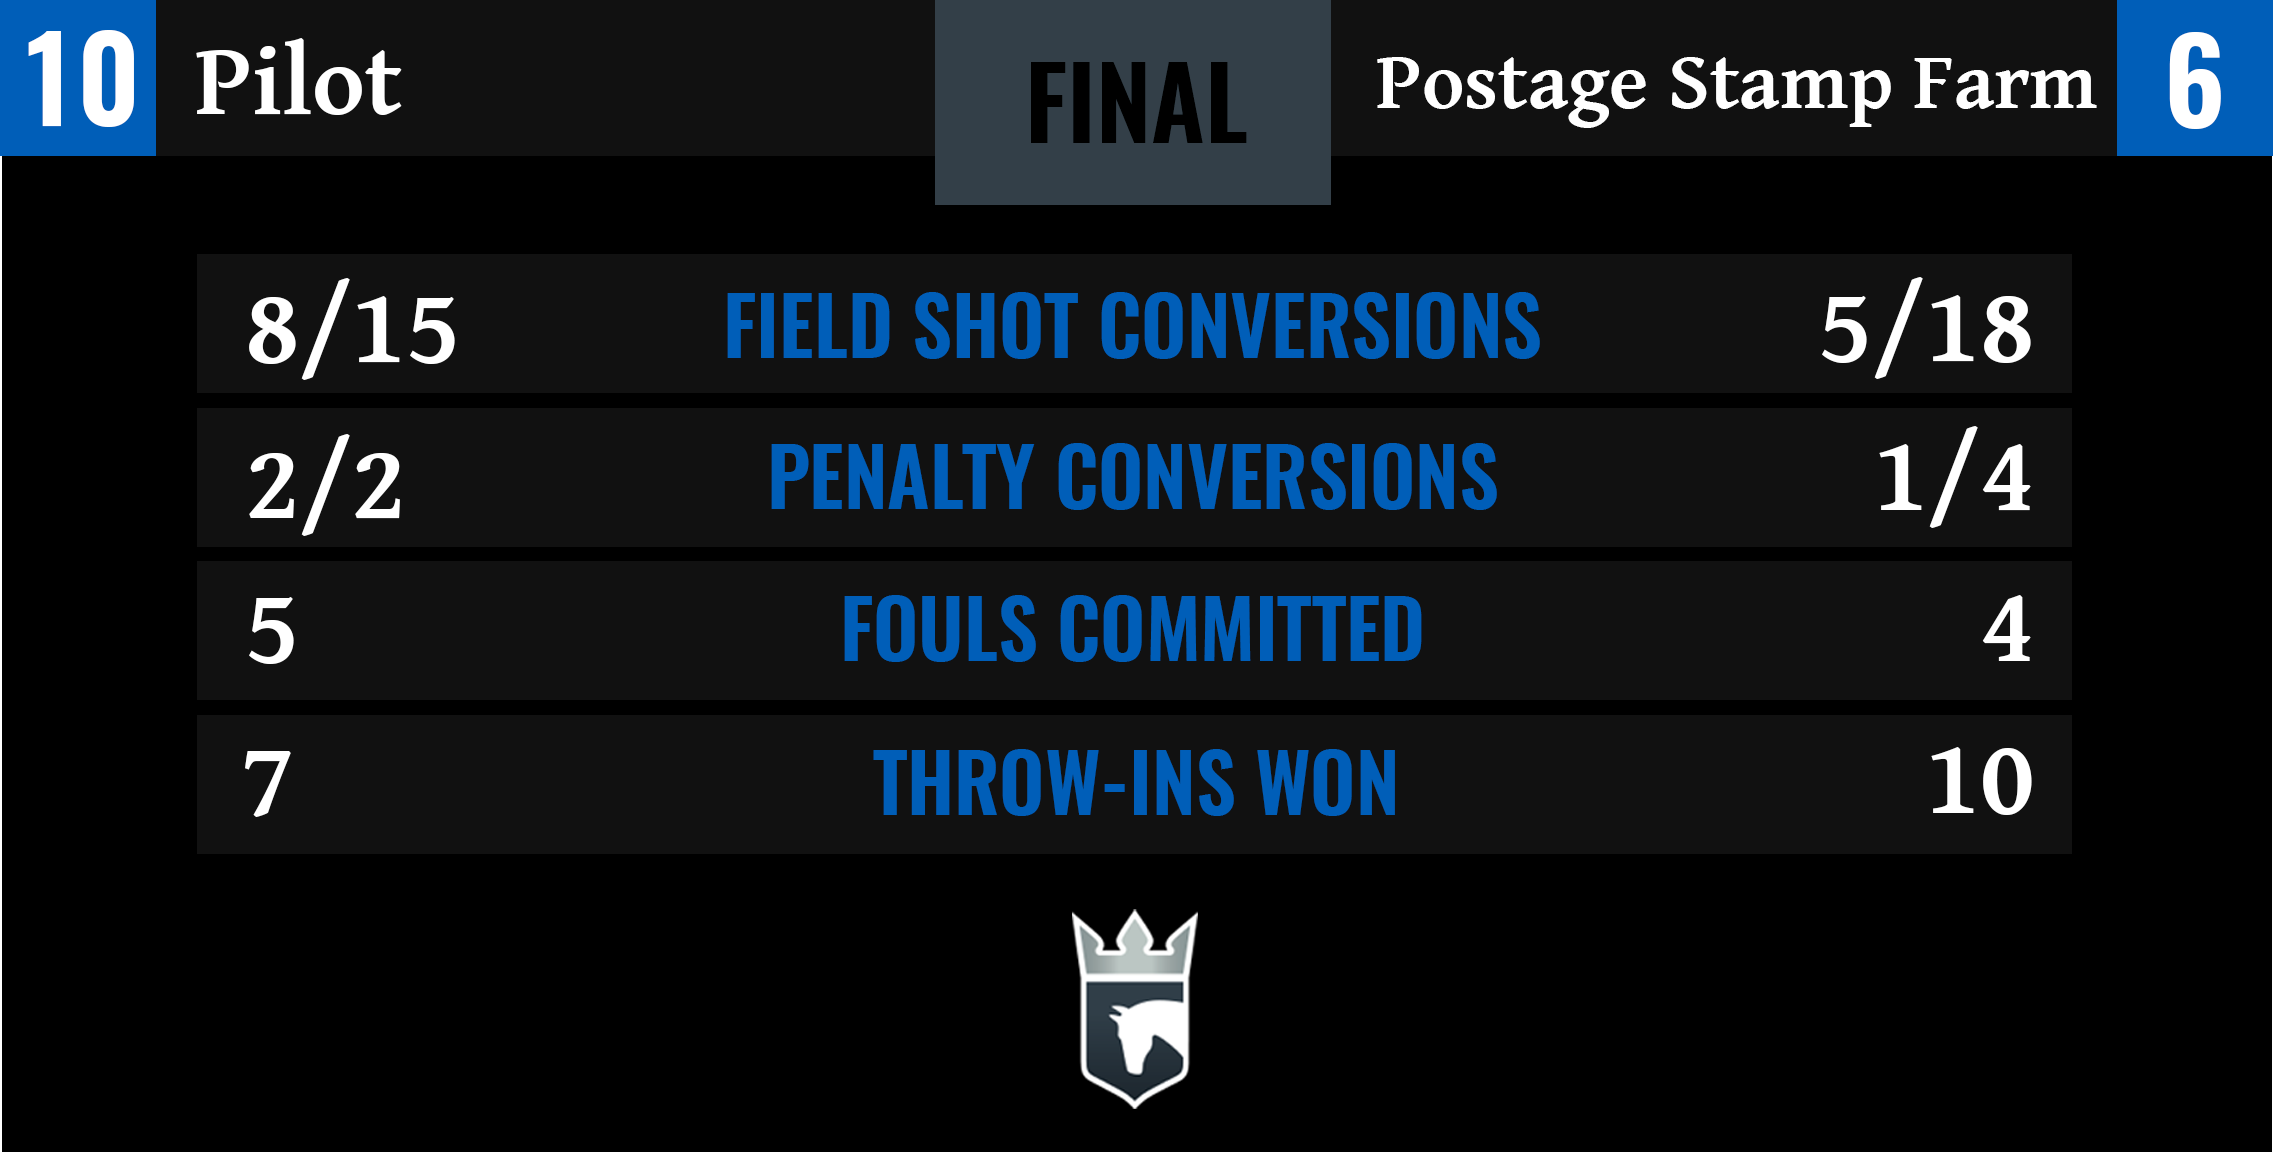 Pilot vs Postage Stamp Farm Final Stats